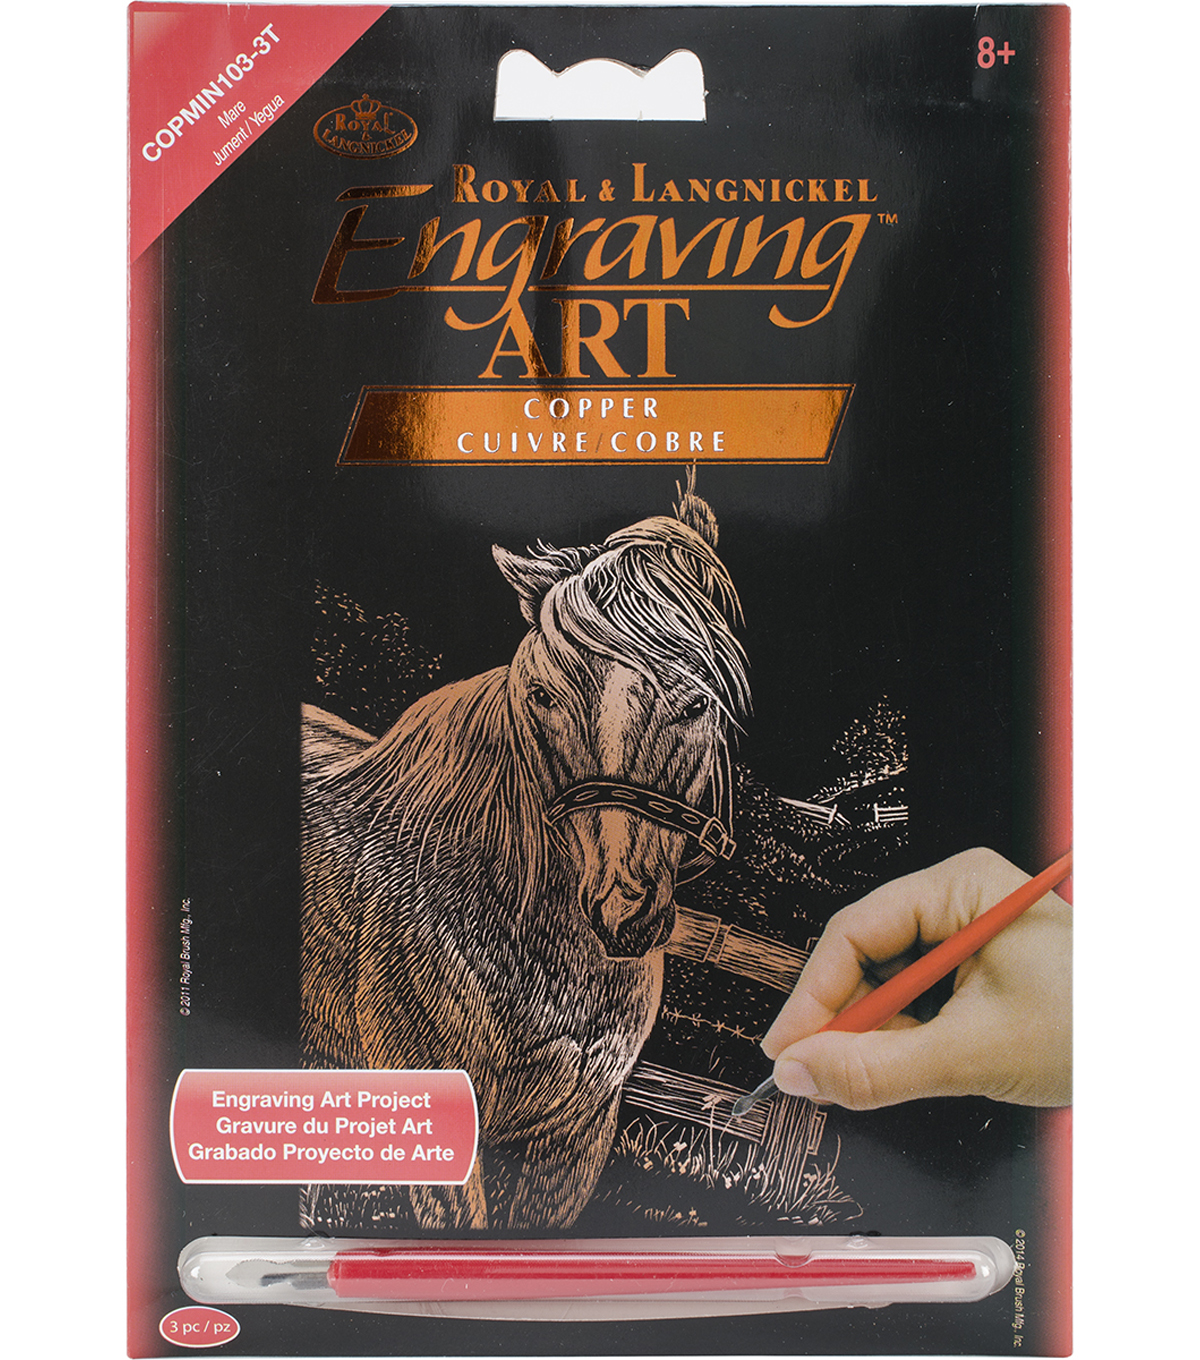 Royal Langnickel Copper Foil Mare Engraving Art Mini Kit